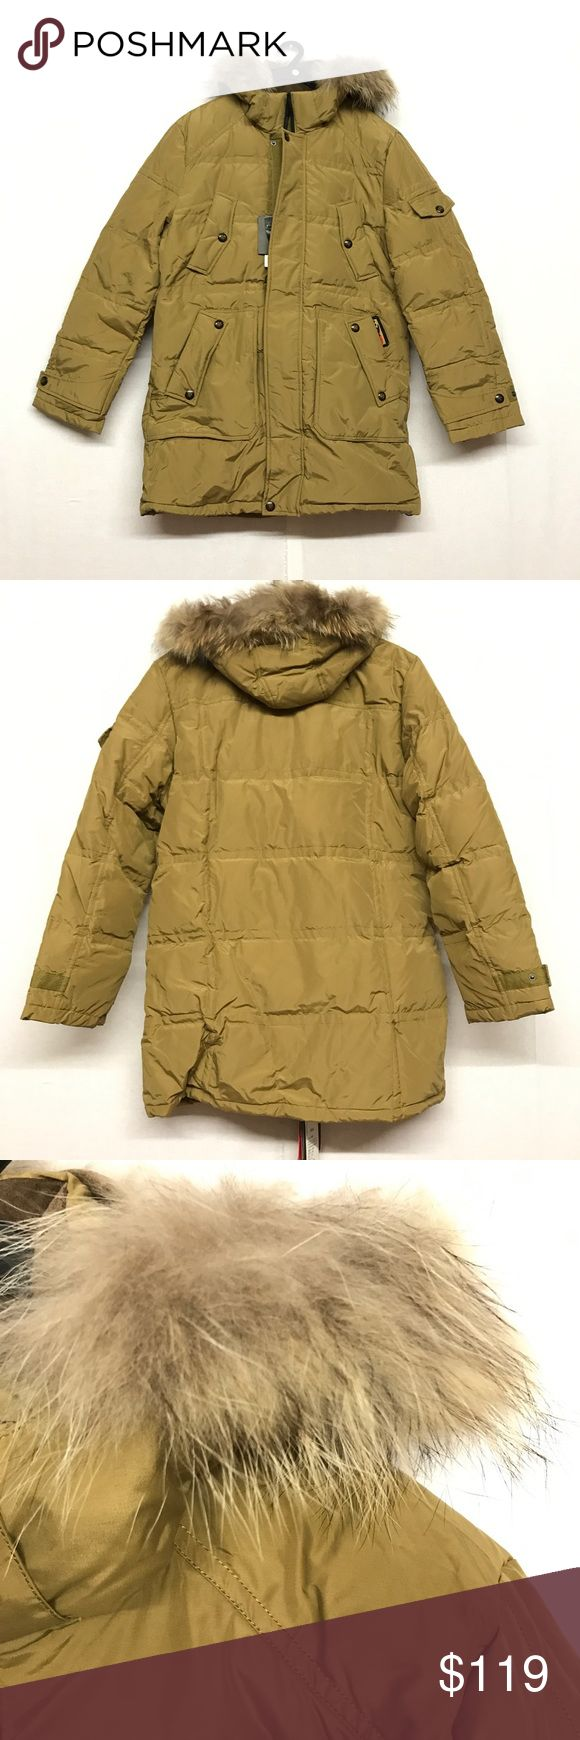 Men's puffer with hood 70% white duck feather. Real fur on hood. I'd love to answer your questions regarding to the item.  Also love to give discounts for bundles. I always ship safely and quickly. Feel free to make a reasonable offer if you love the item but not the price. Usually offers make deals!🤗 Jackets & Coats Puffers